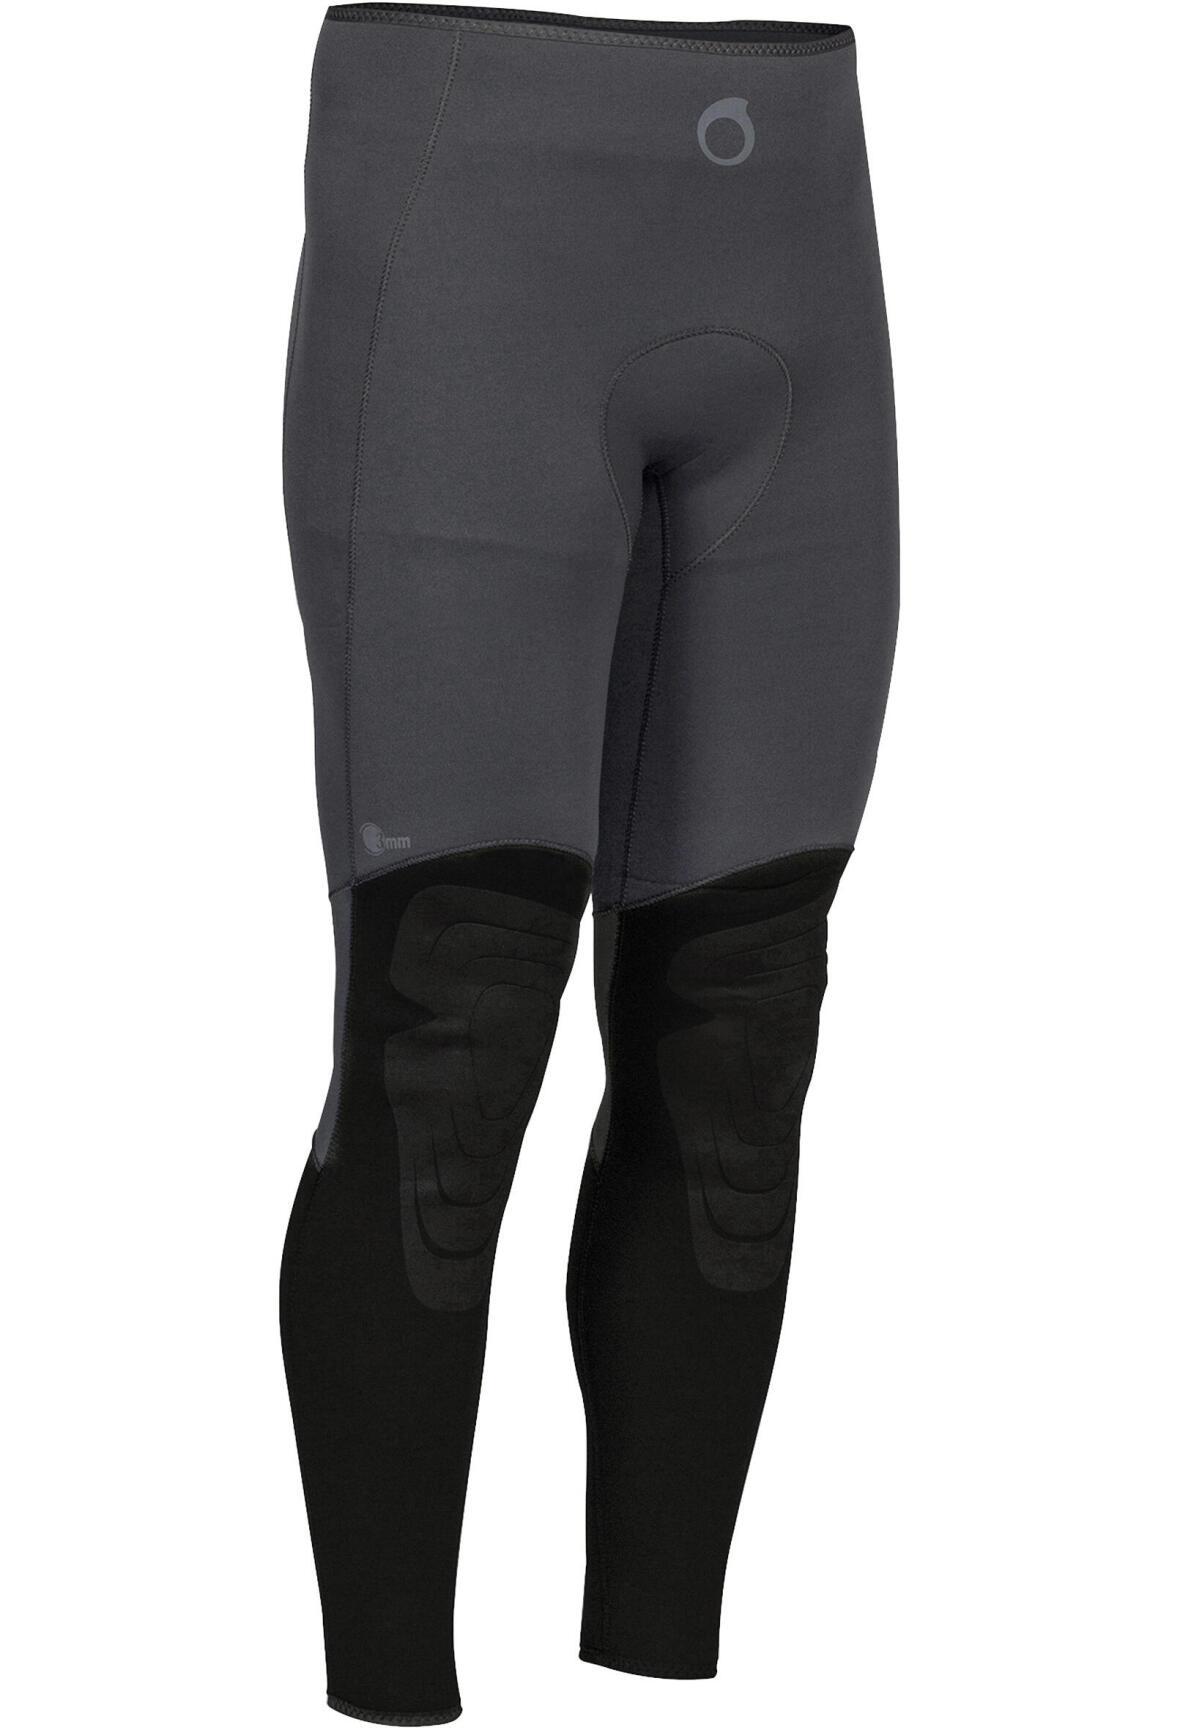 trousers spf 100 3mm